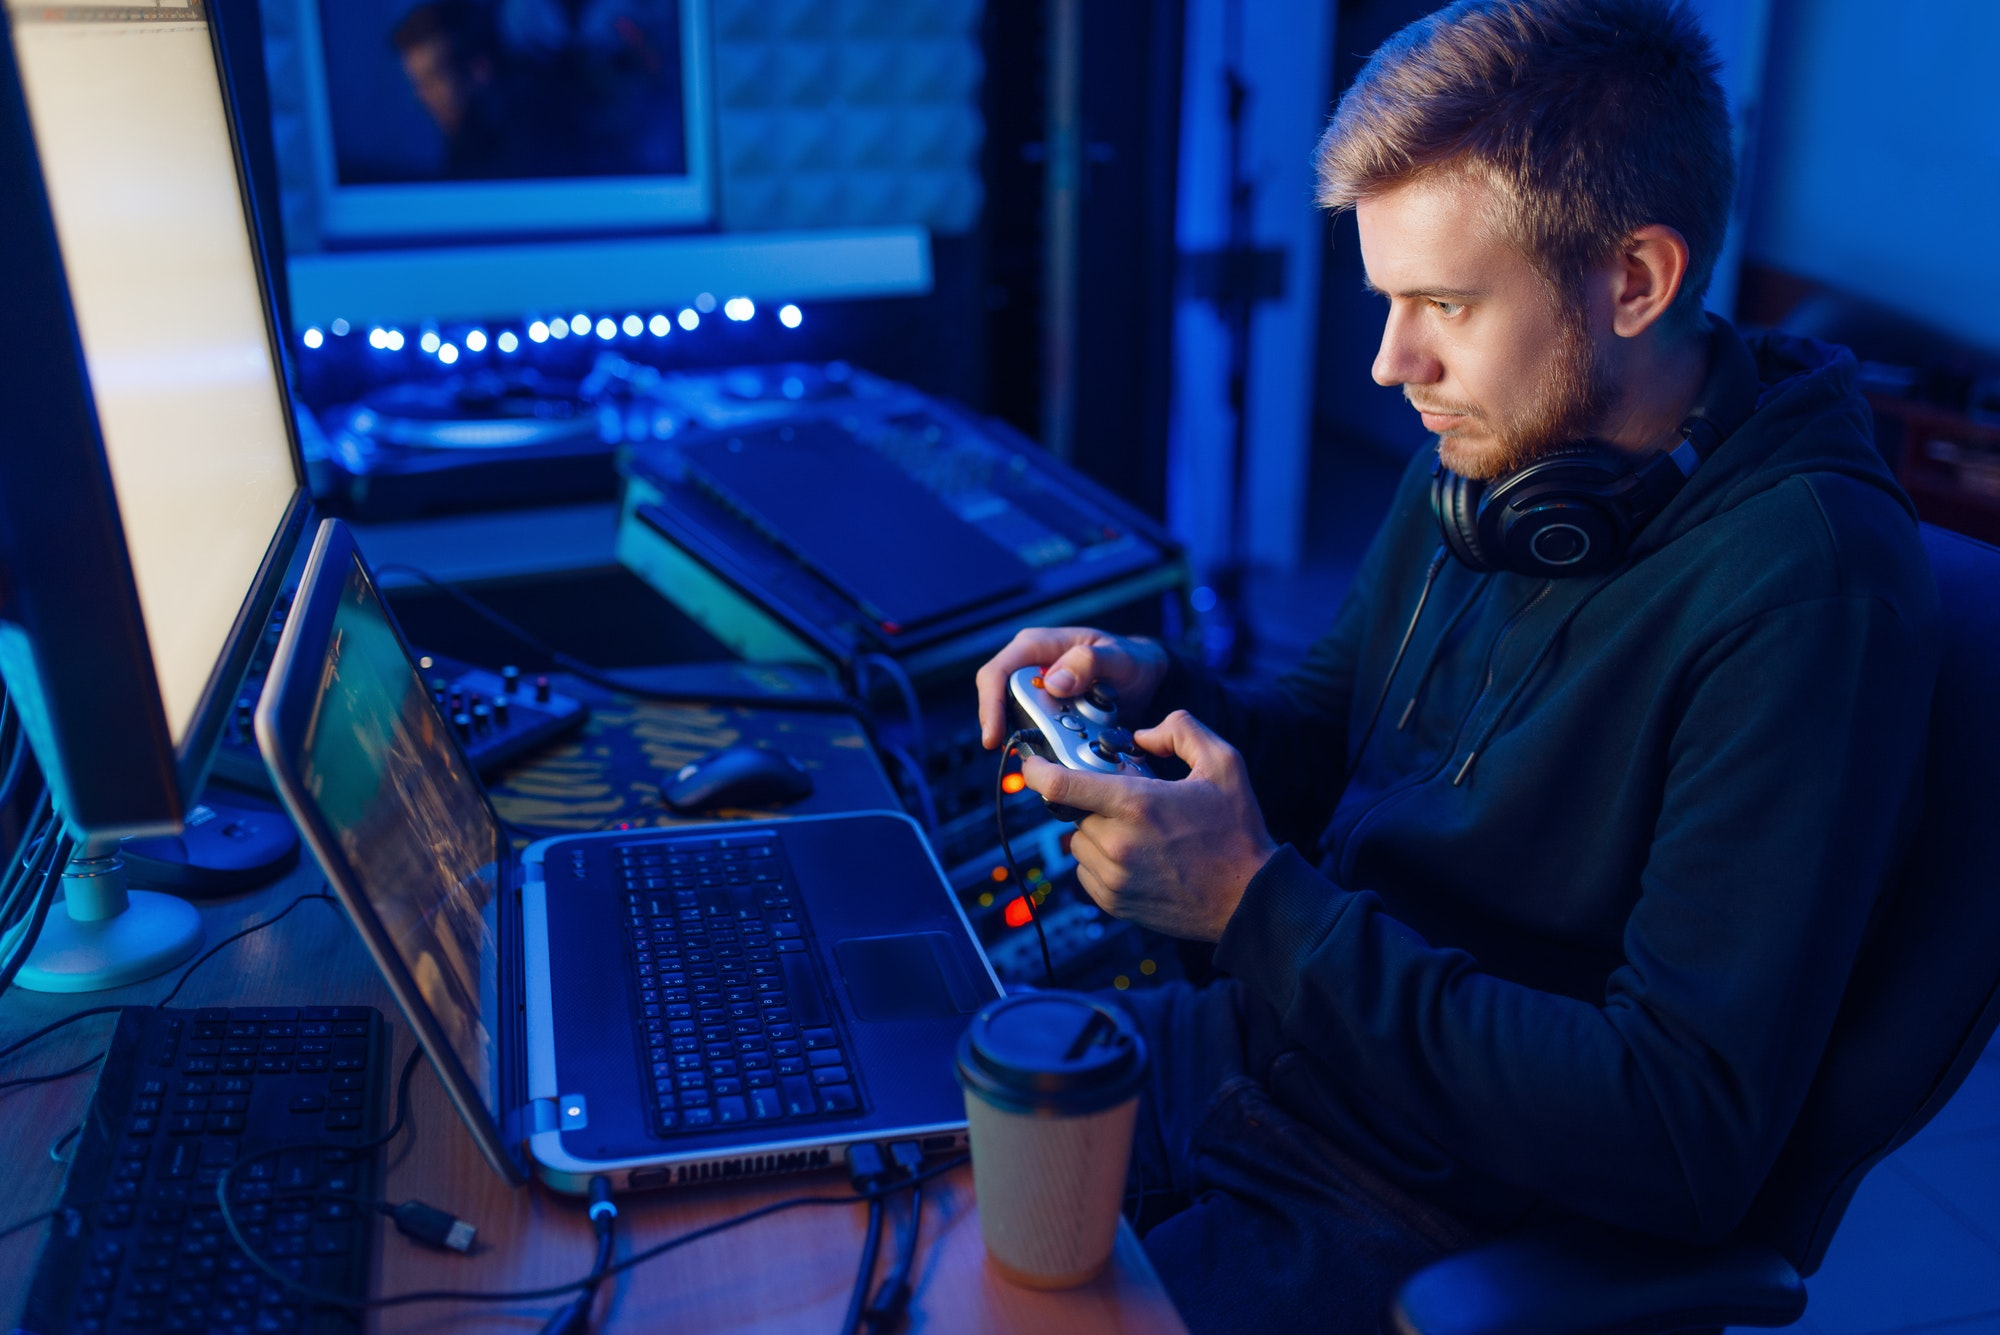 Gamer with joystick playing videogame on console